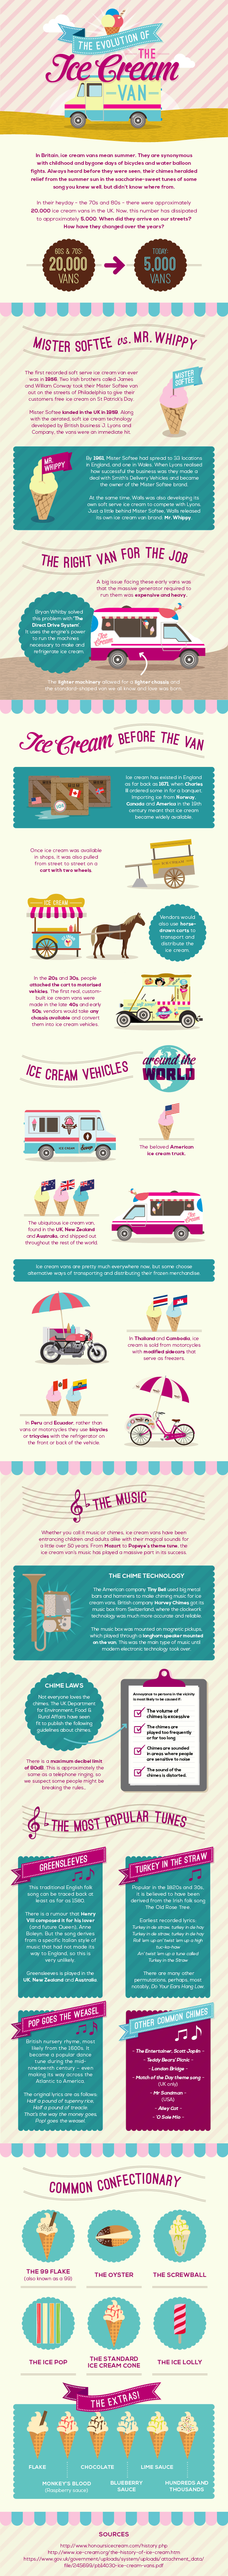 Evolution of the Ice Cream Van